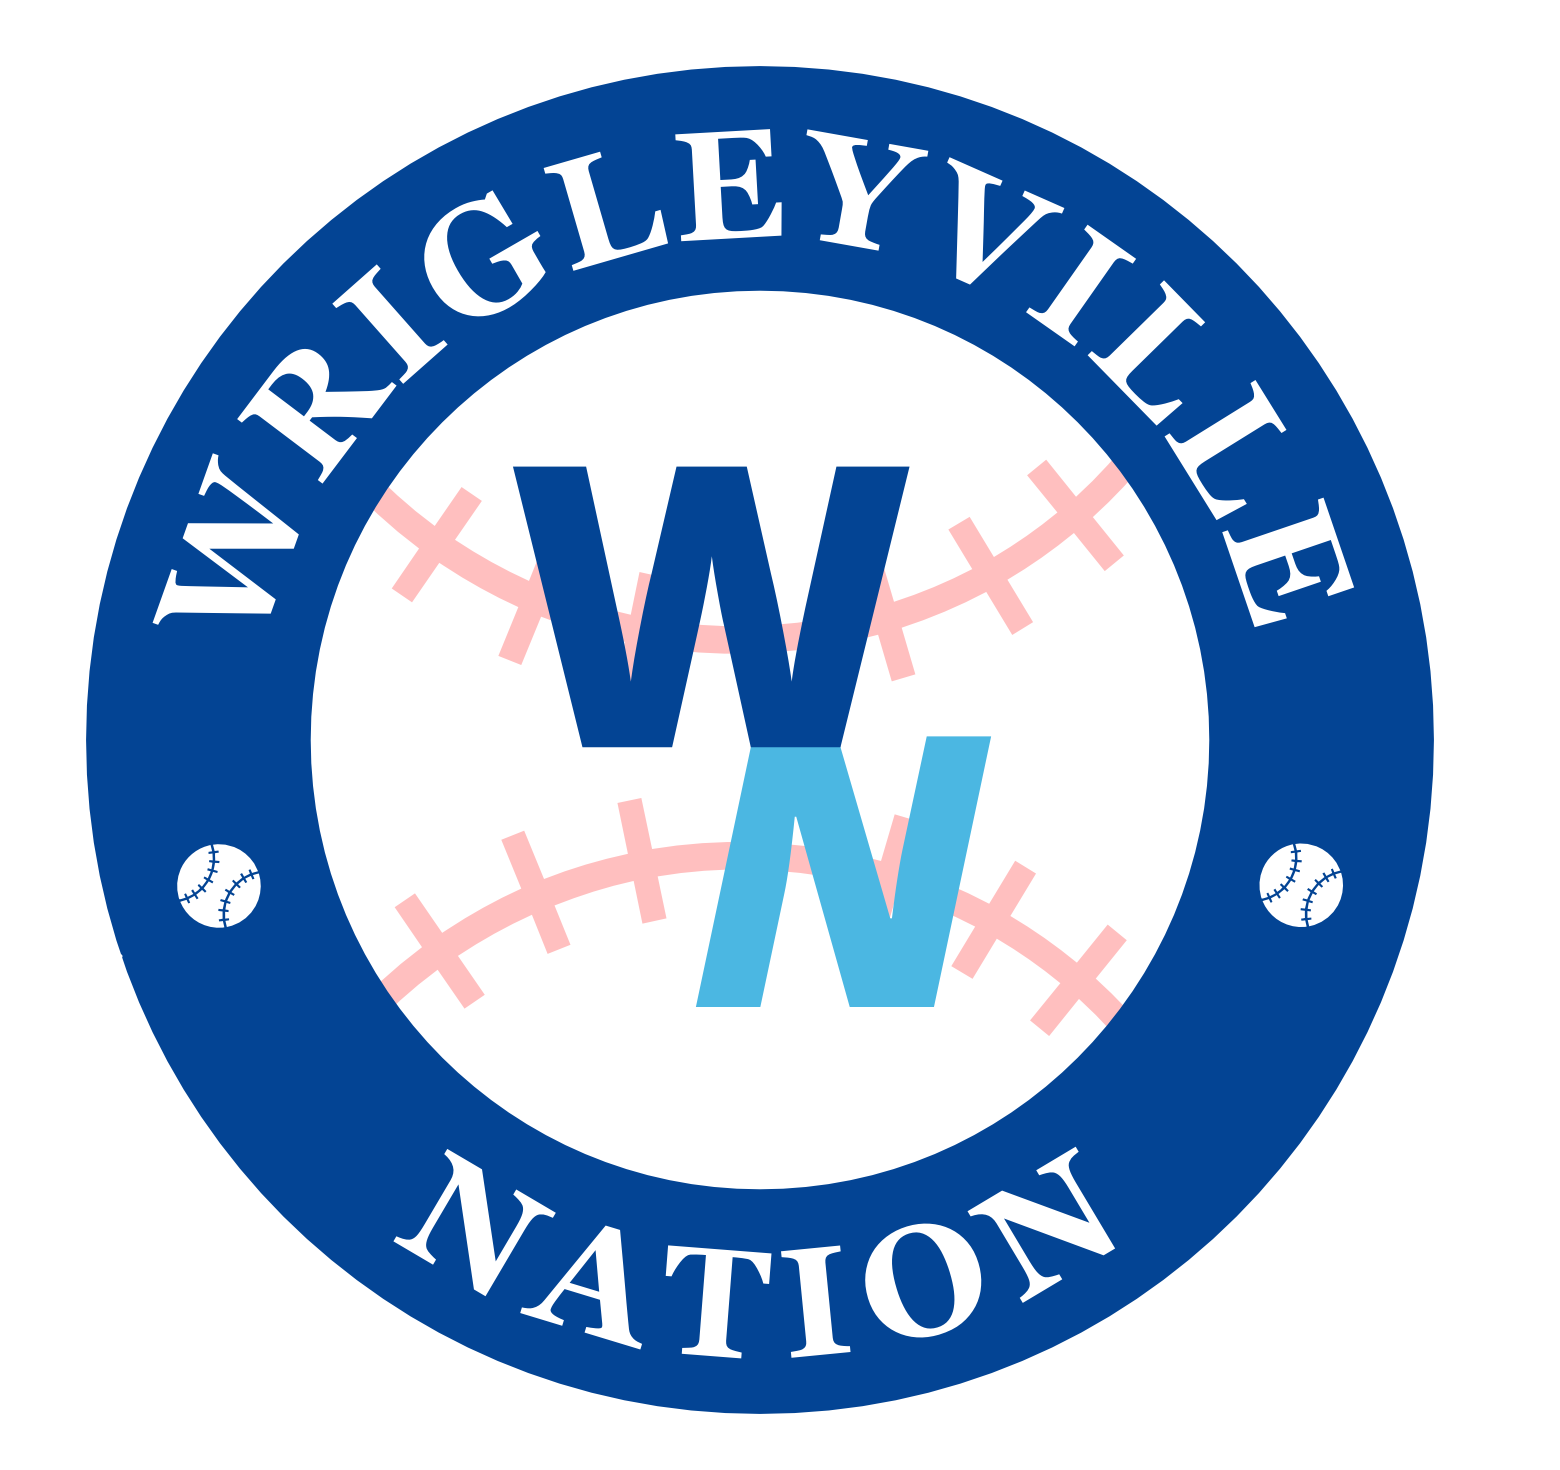 Wrigleyville Nation Ep 266 - Guest: James Neveau, Kris Bryant Returns to Wrigley, & More show art